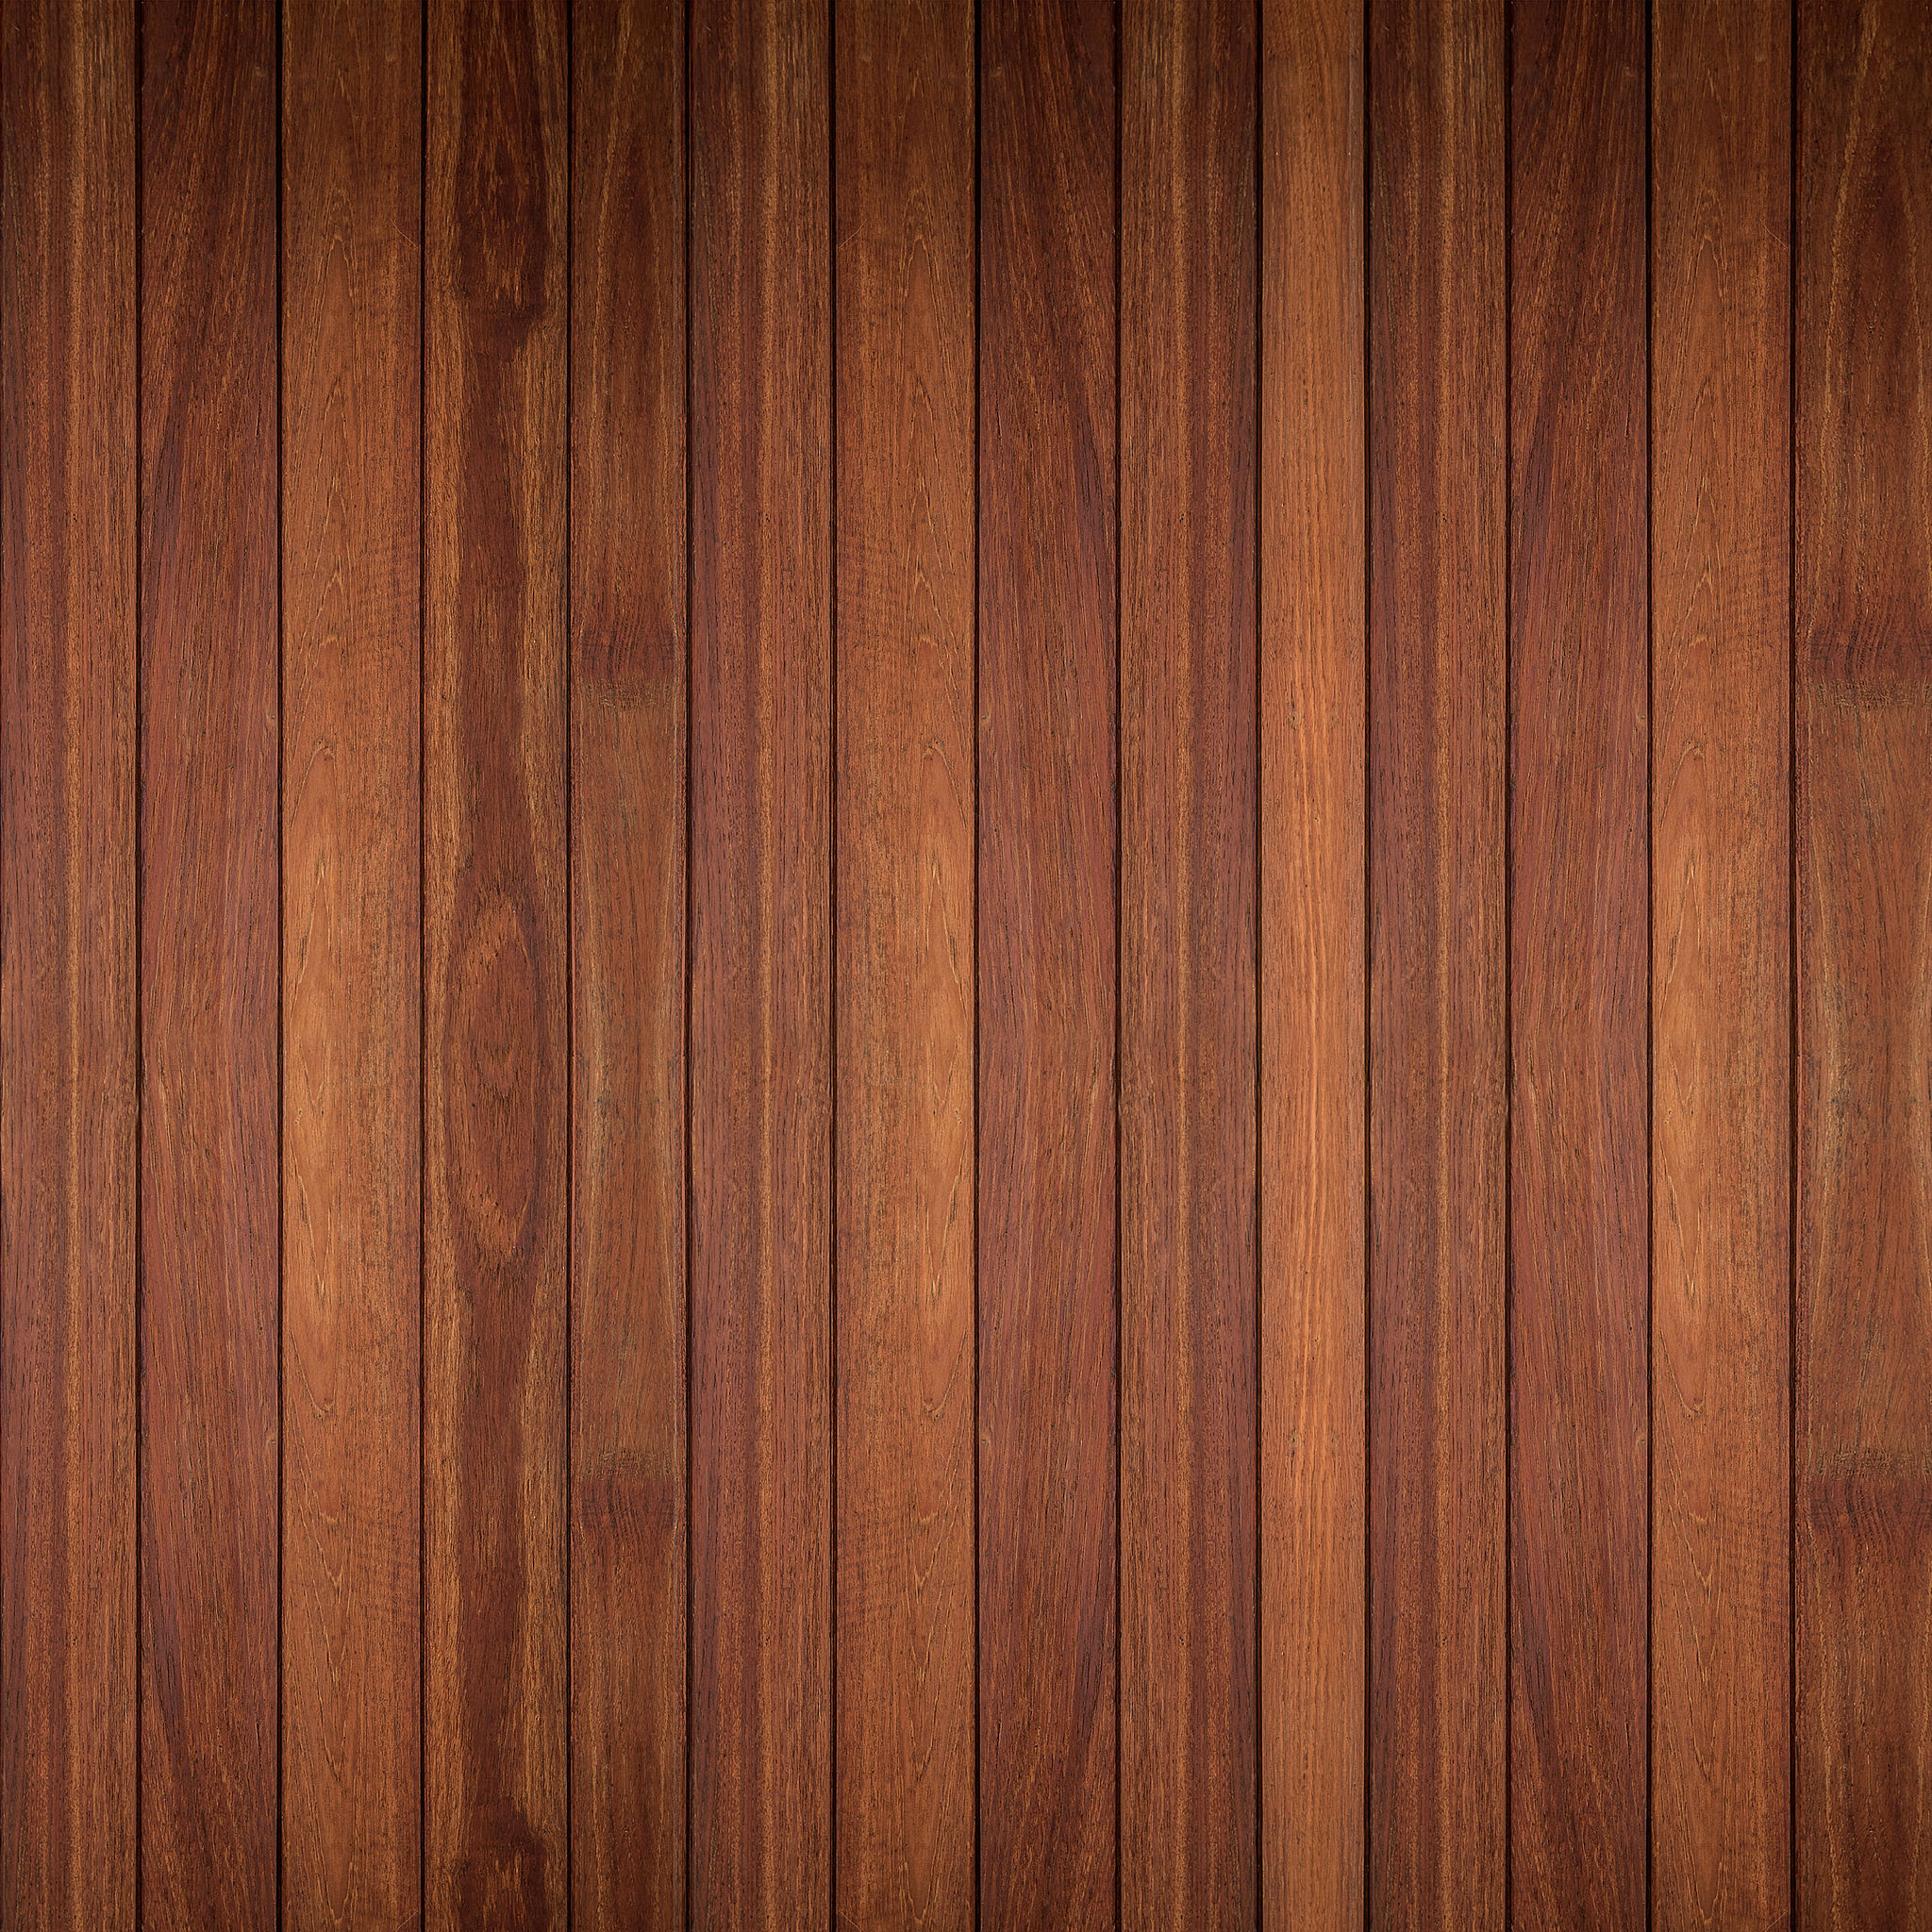 ... brazilian cherry hardwood is right for your application, though. the  exact BLNLLSR